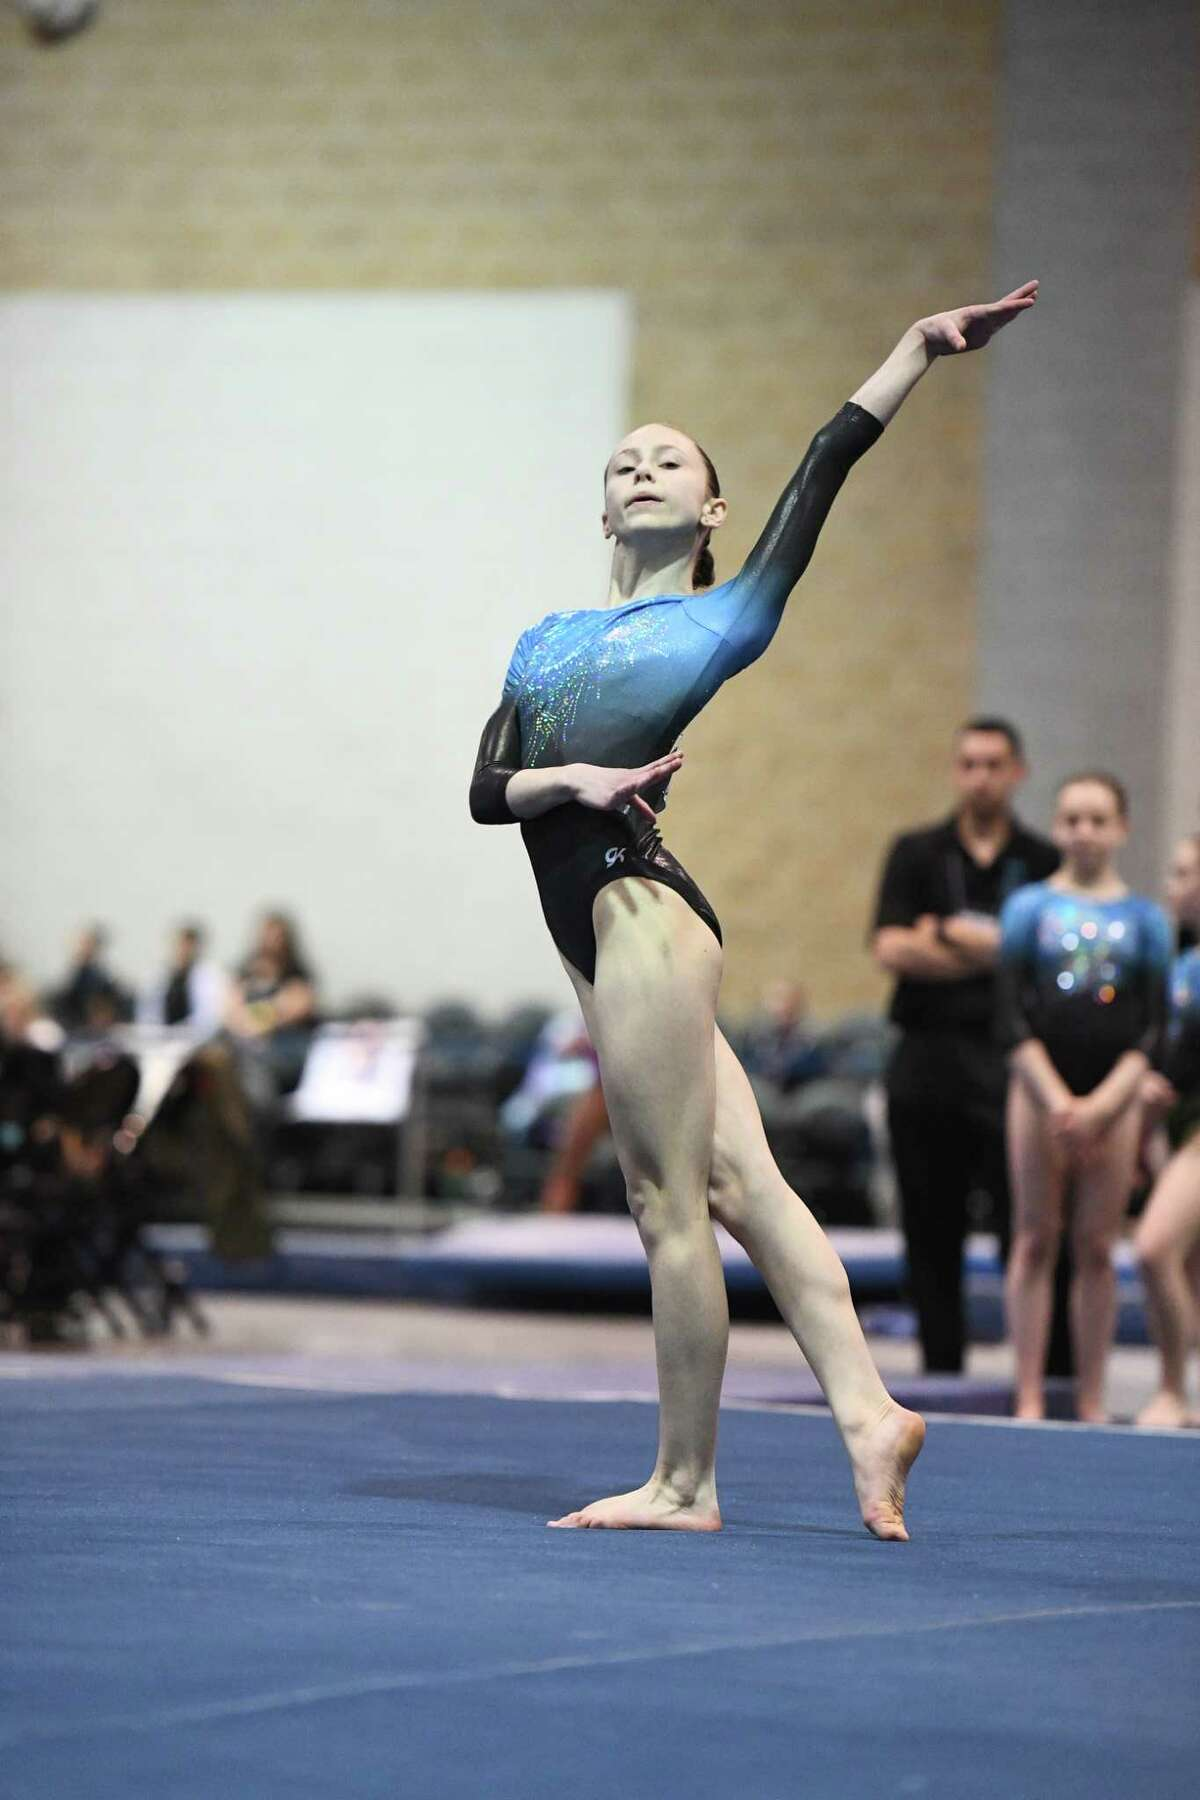 Ava Dallas, a freshman from Saratoga, is the 2018 Times Union Athlete of the Year for the sport of gymnastics.